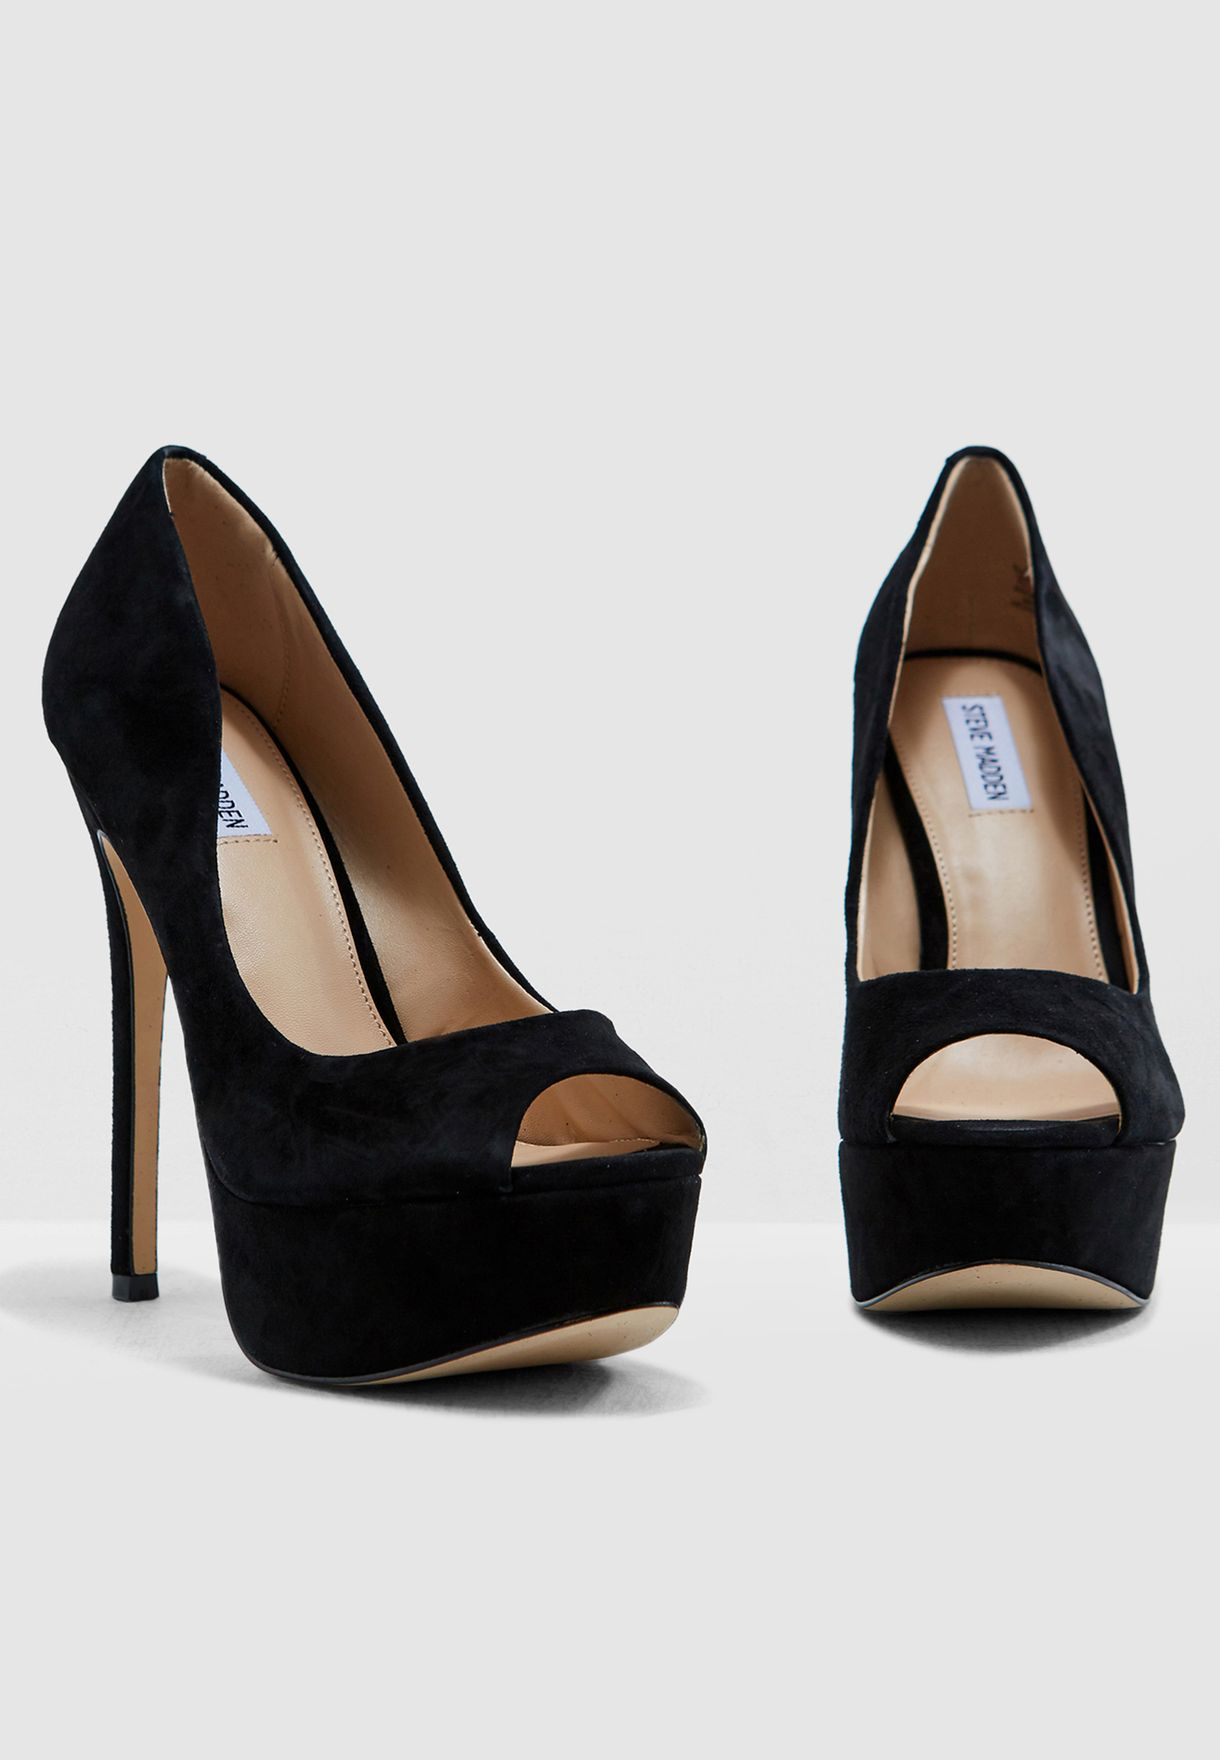 936812ca3b9 Shop Steve Madden black Toots Platform Pump TOOTS for Women in Saudi ...